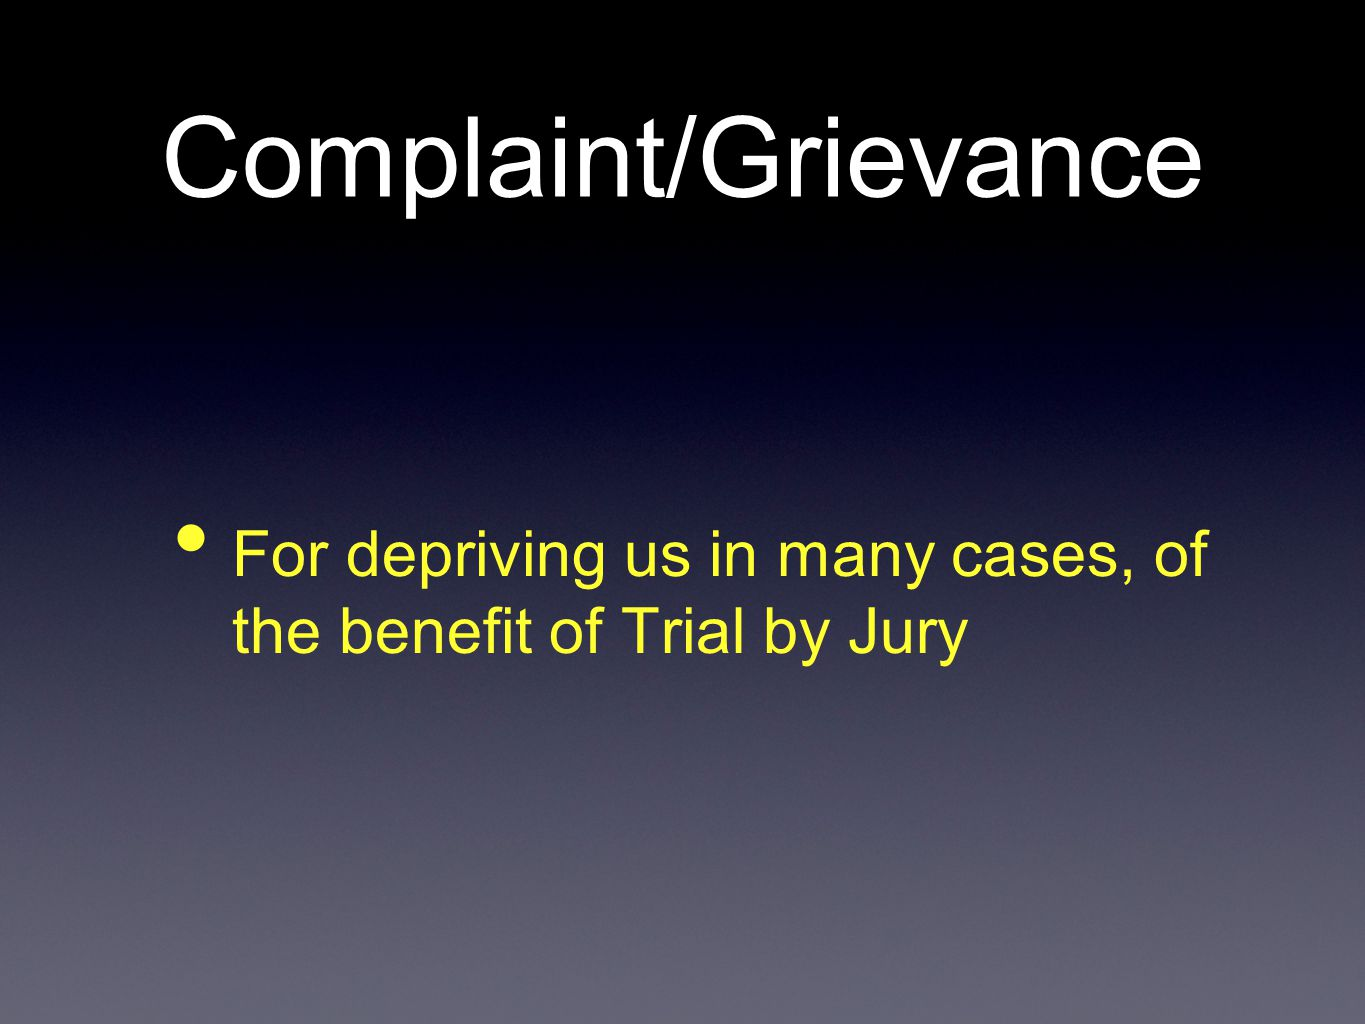 Complaint/Grievance For depriving us in many cases, of the benefit of Trial by Jury